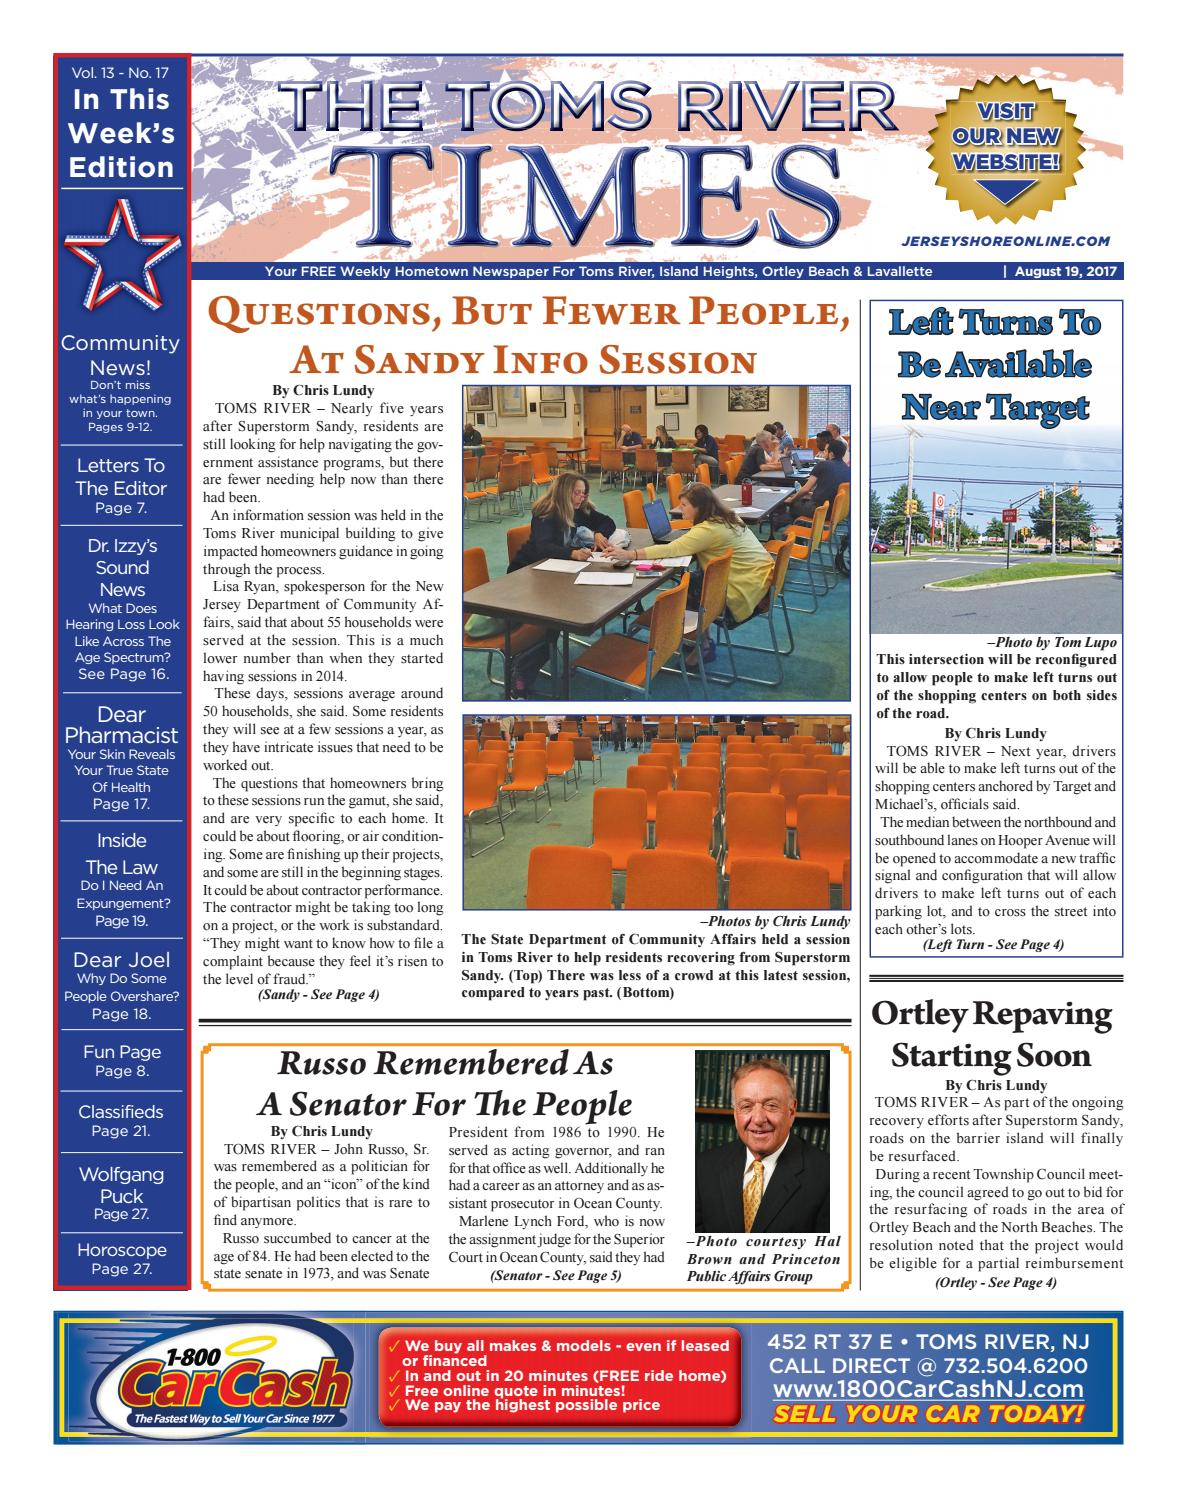 2017-08-19 - The Toms River Times